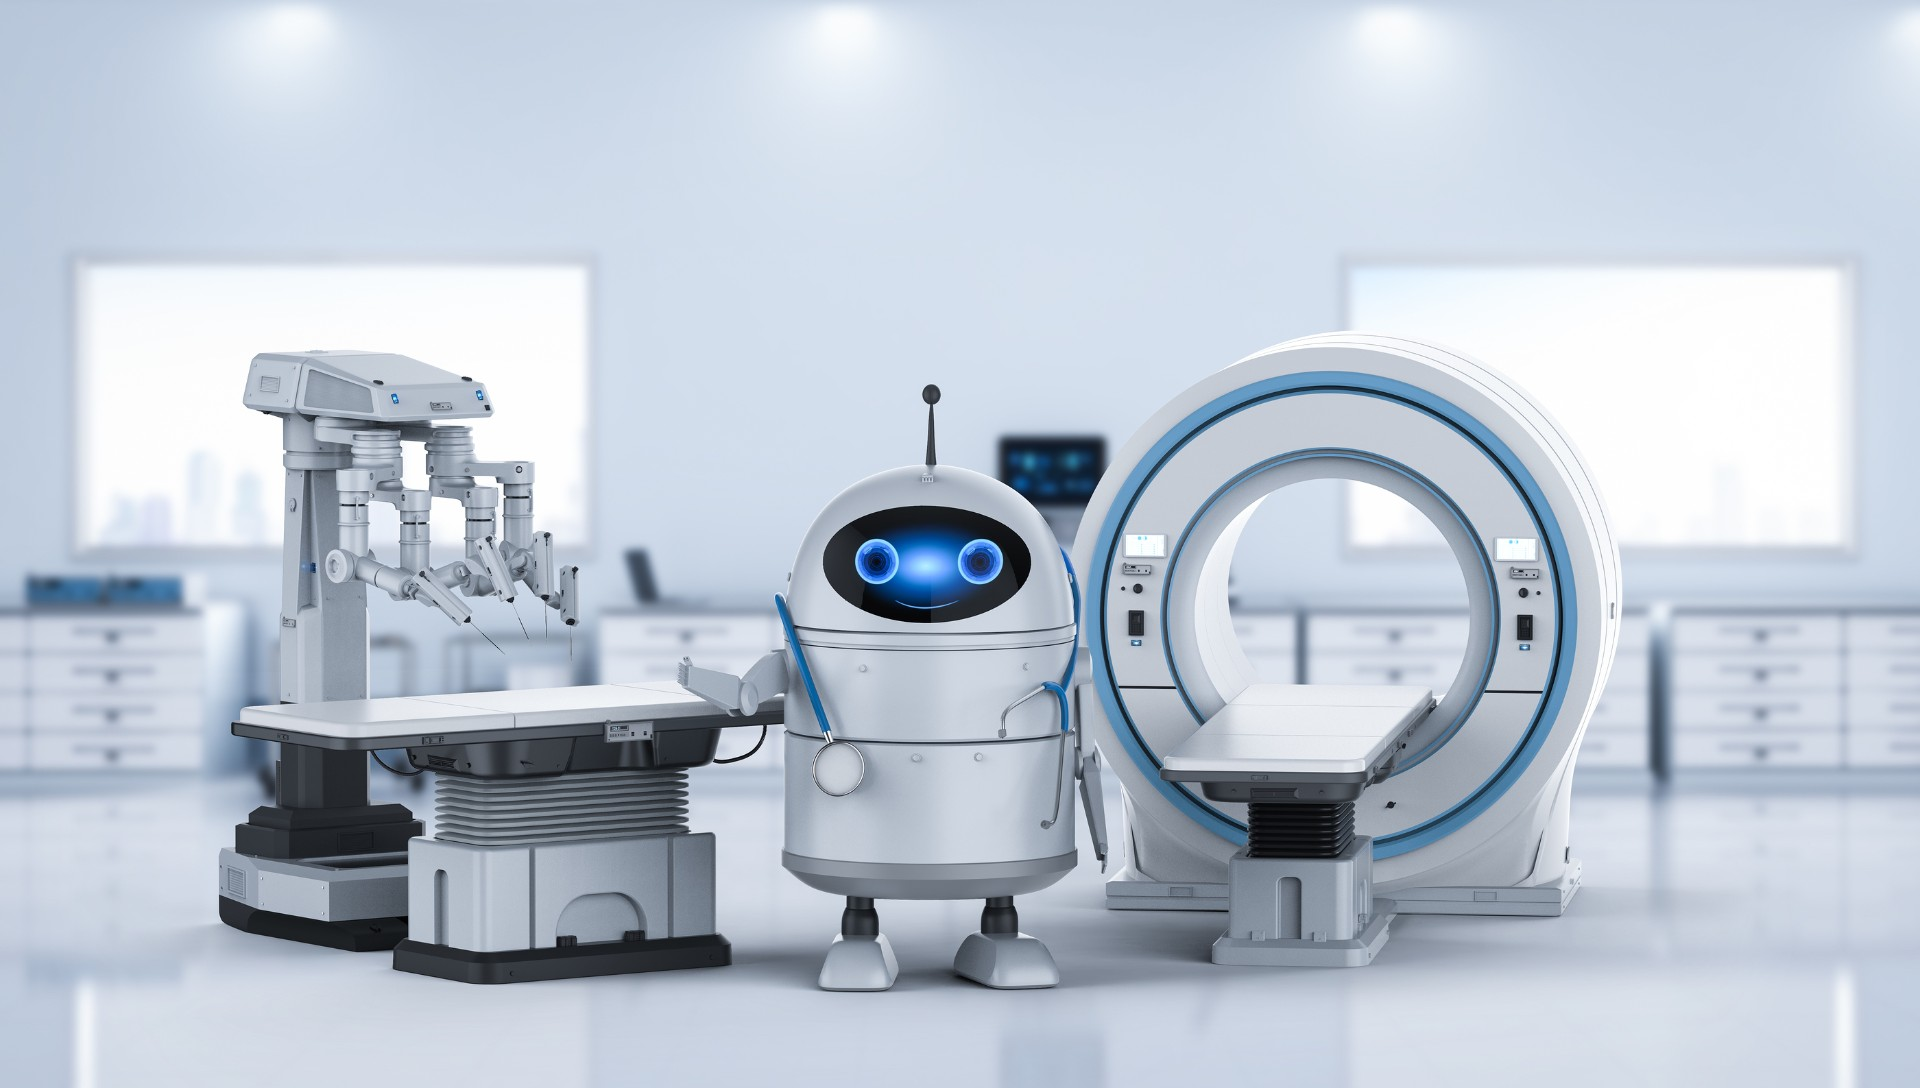 The Robot Will See You Now: This Is a Preview into the Robot Revolution